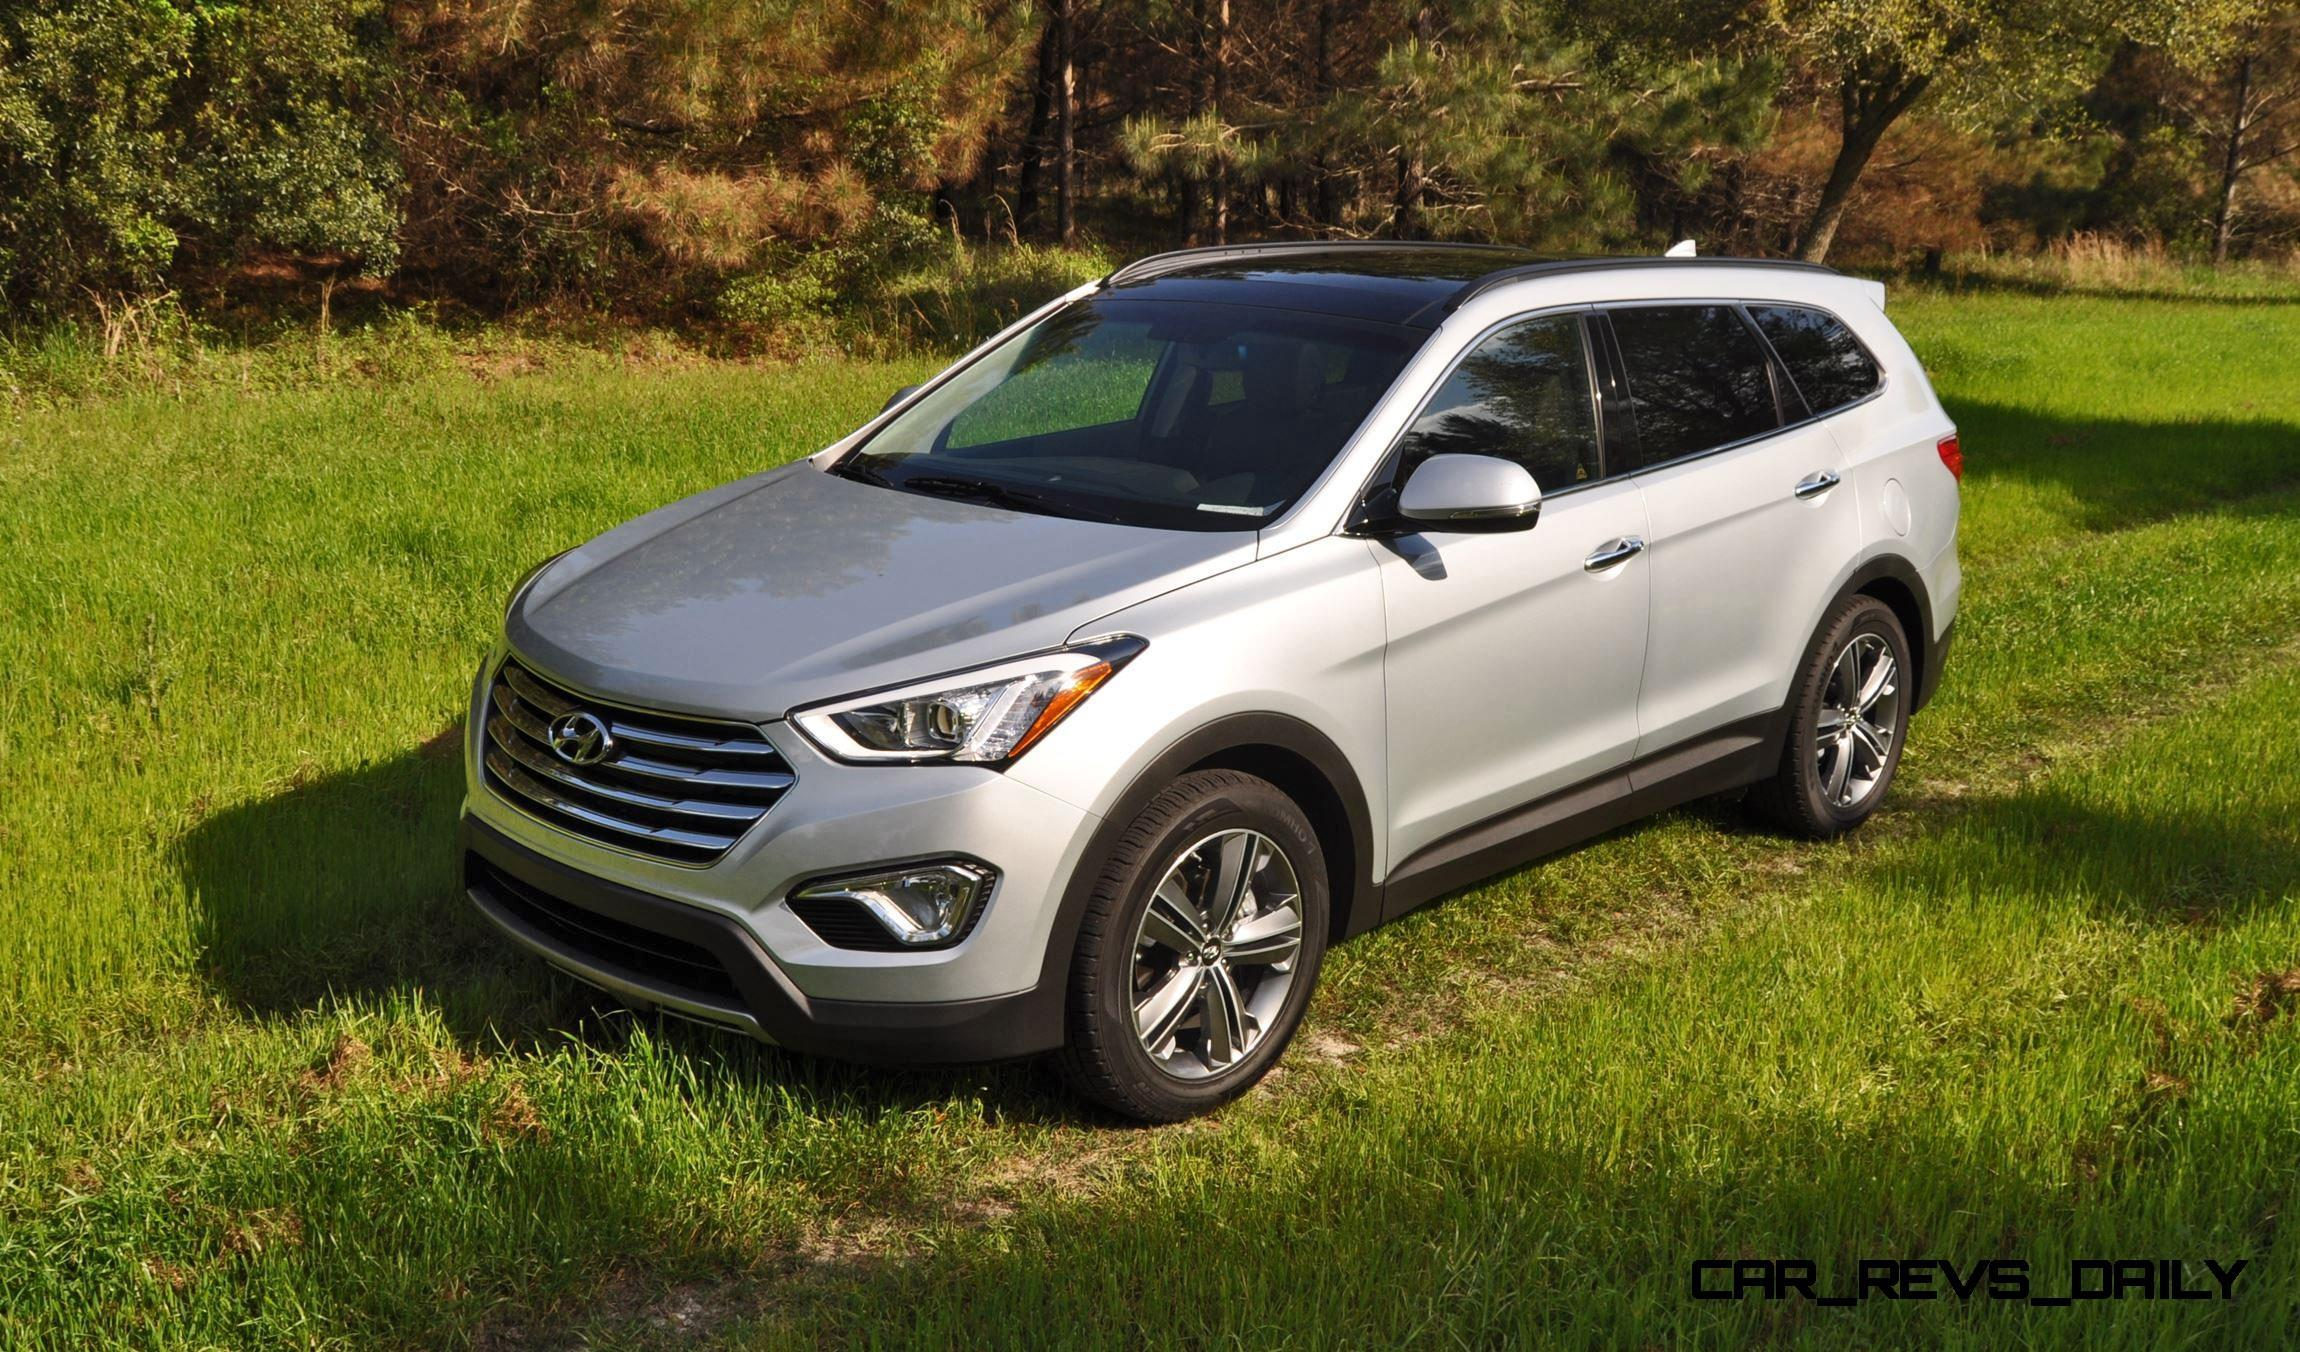 road test review 2015 hyundai santa fe limited awd with ken. Black Bedroom Furniture Sets. Home Design Ideas